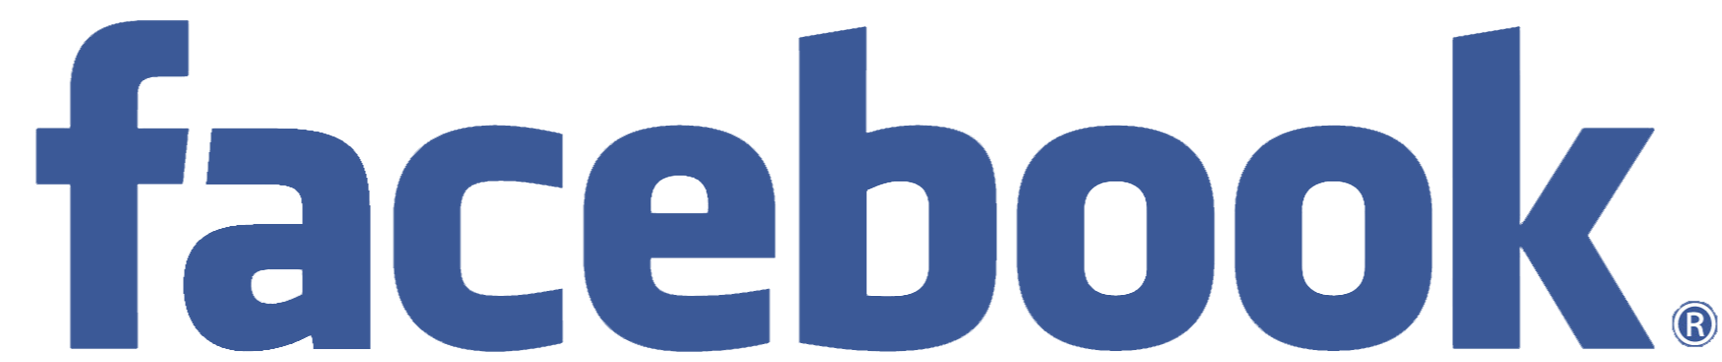 Facebook Logo Clipart PNG Image